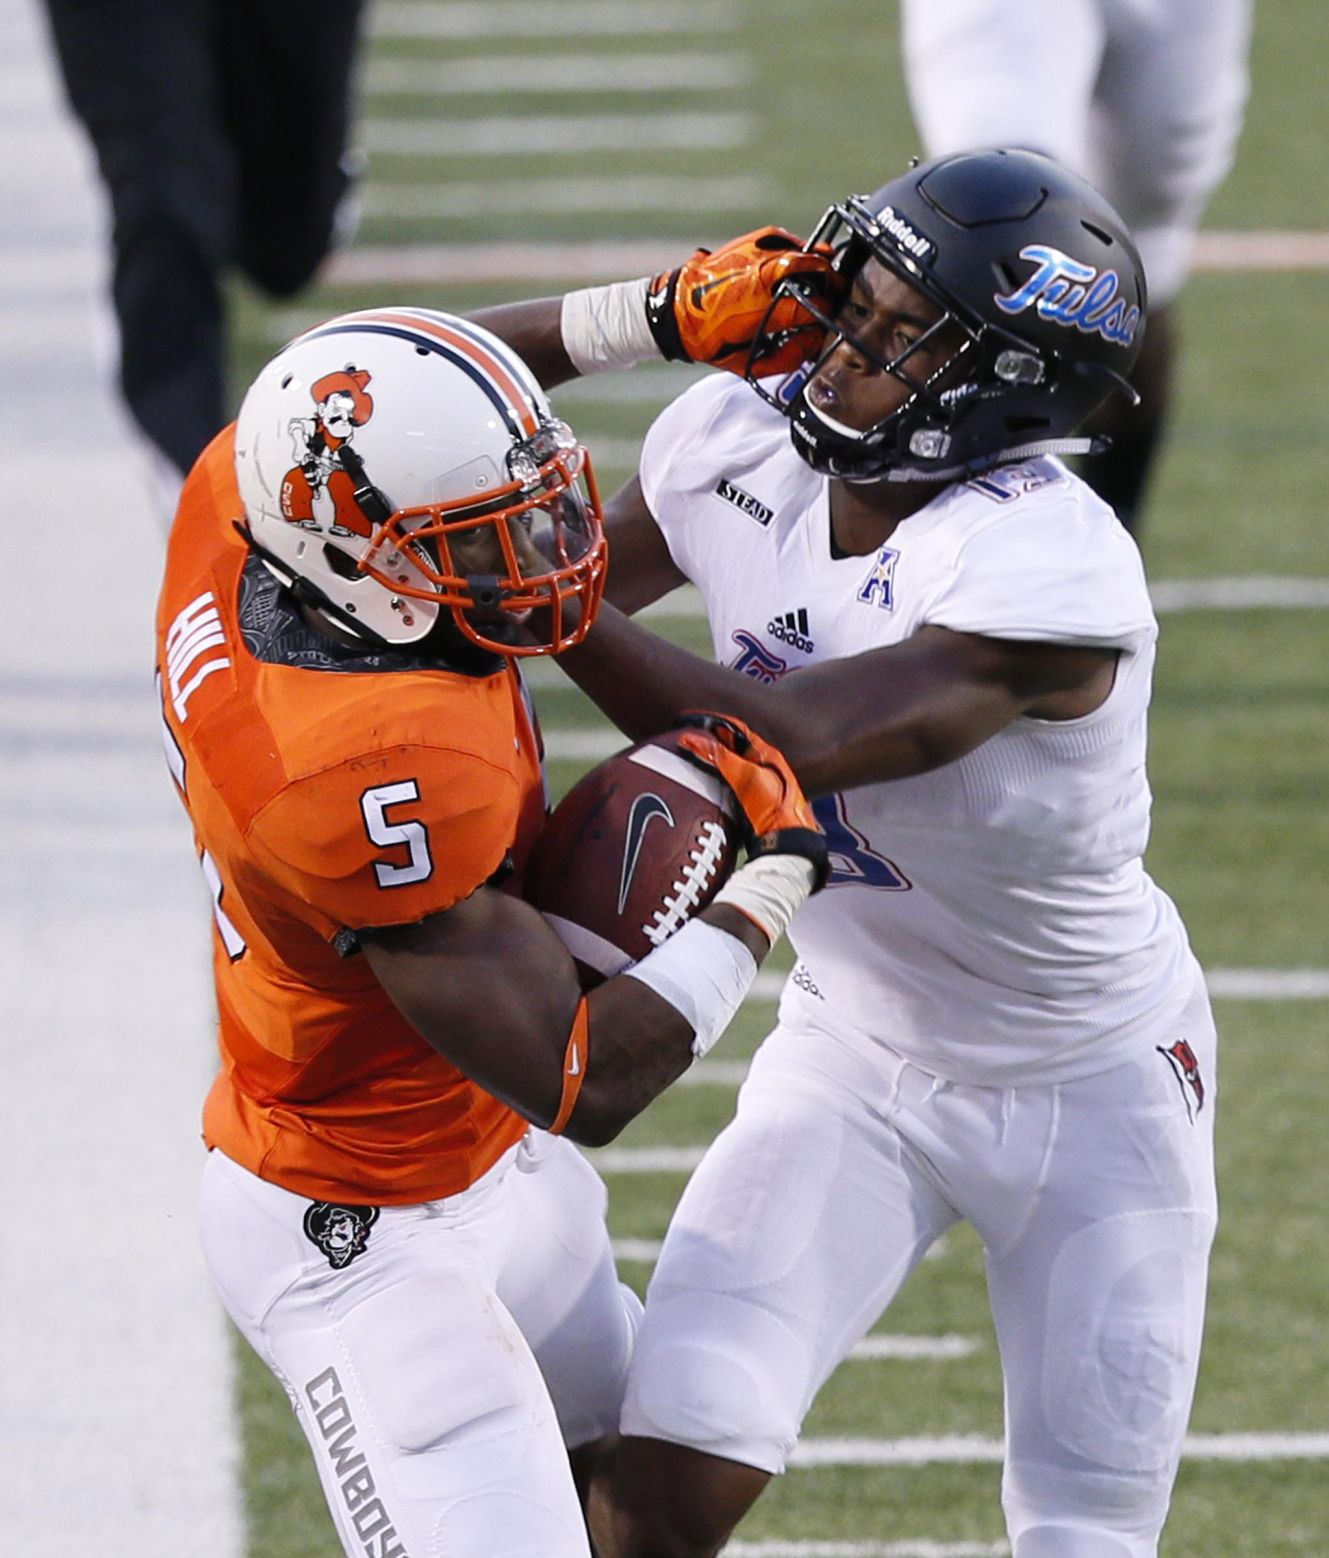 Oklahoma State's Rudolph shows National Football League  form in rout of Pitt